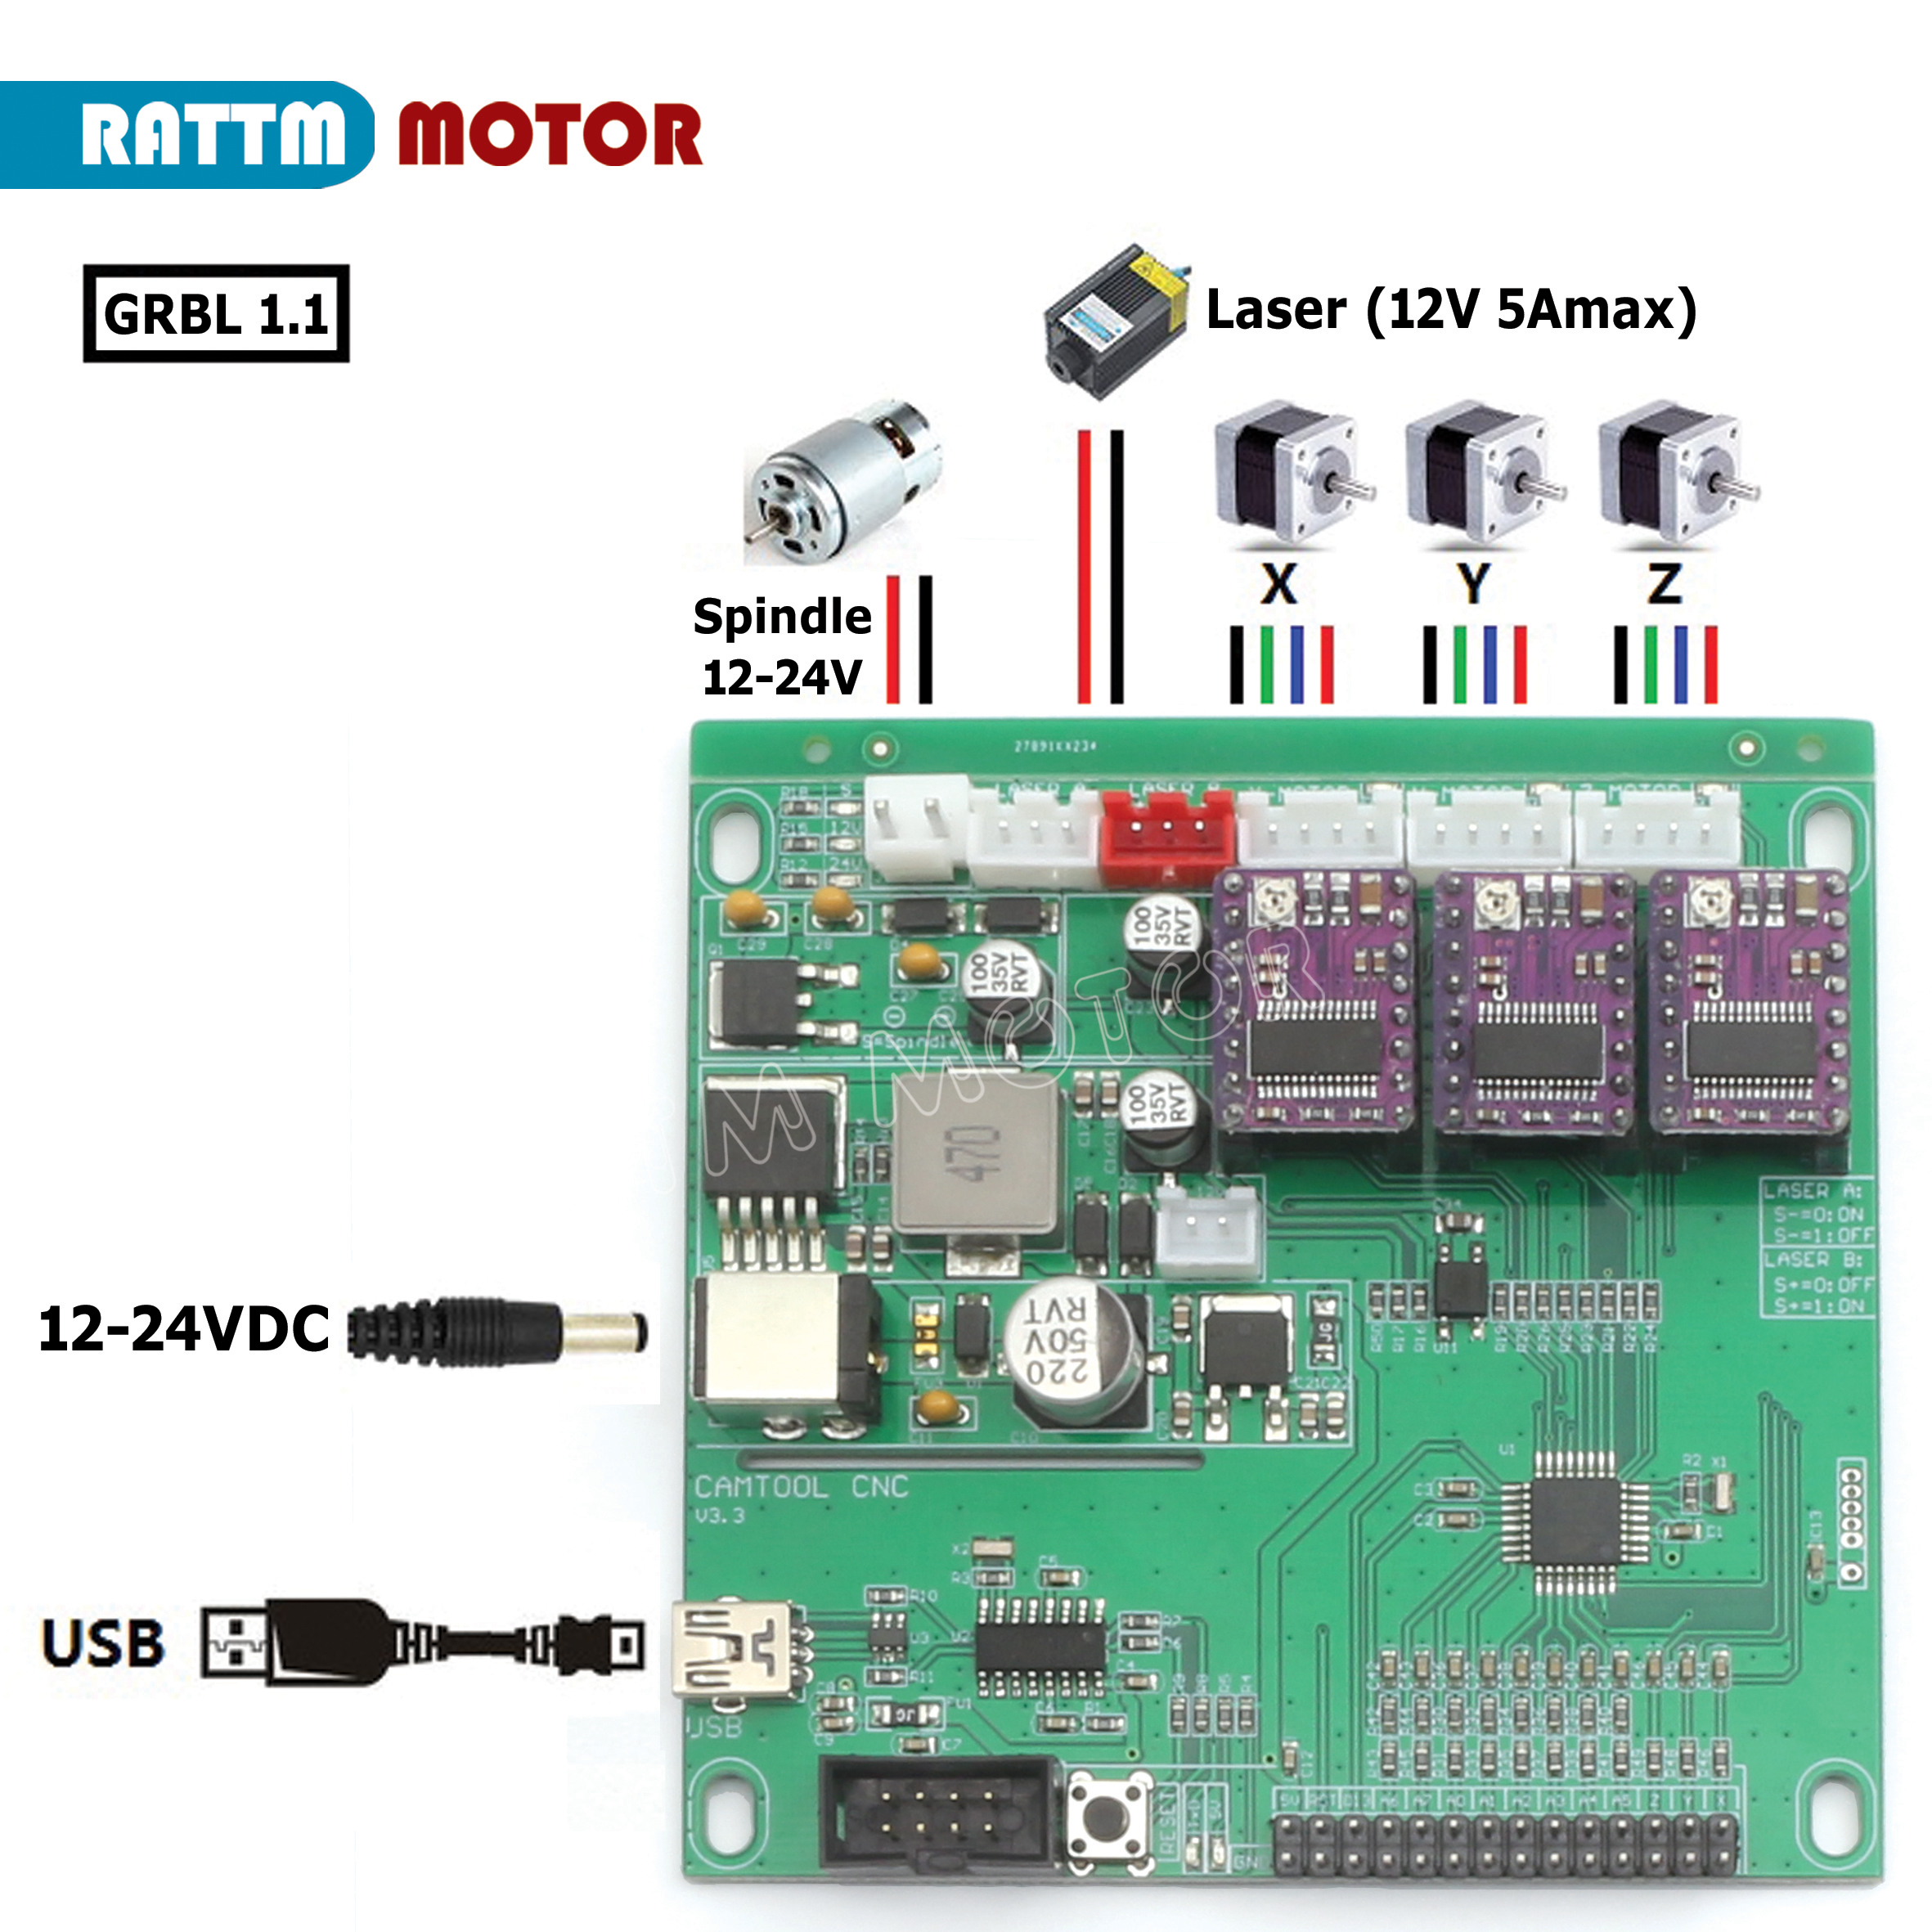 New GRBL 1.1J USB Port 3 Axis CNC Control Board Engraving Machine Support Laser Engraving Anti-jamming Can Use Off-line